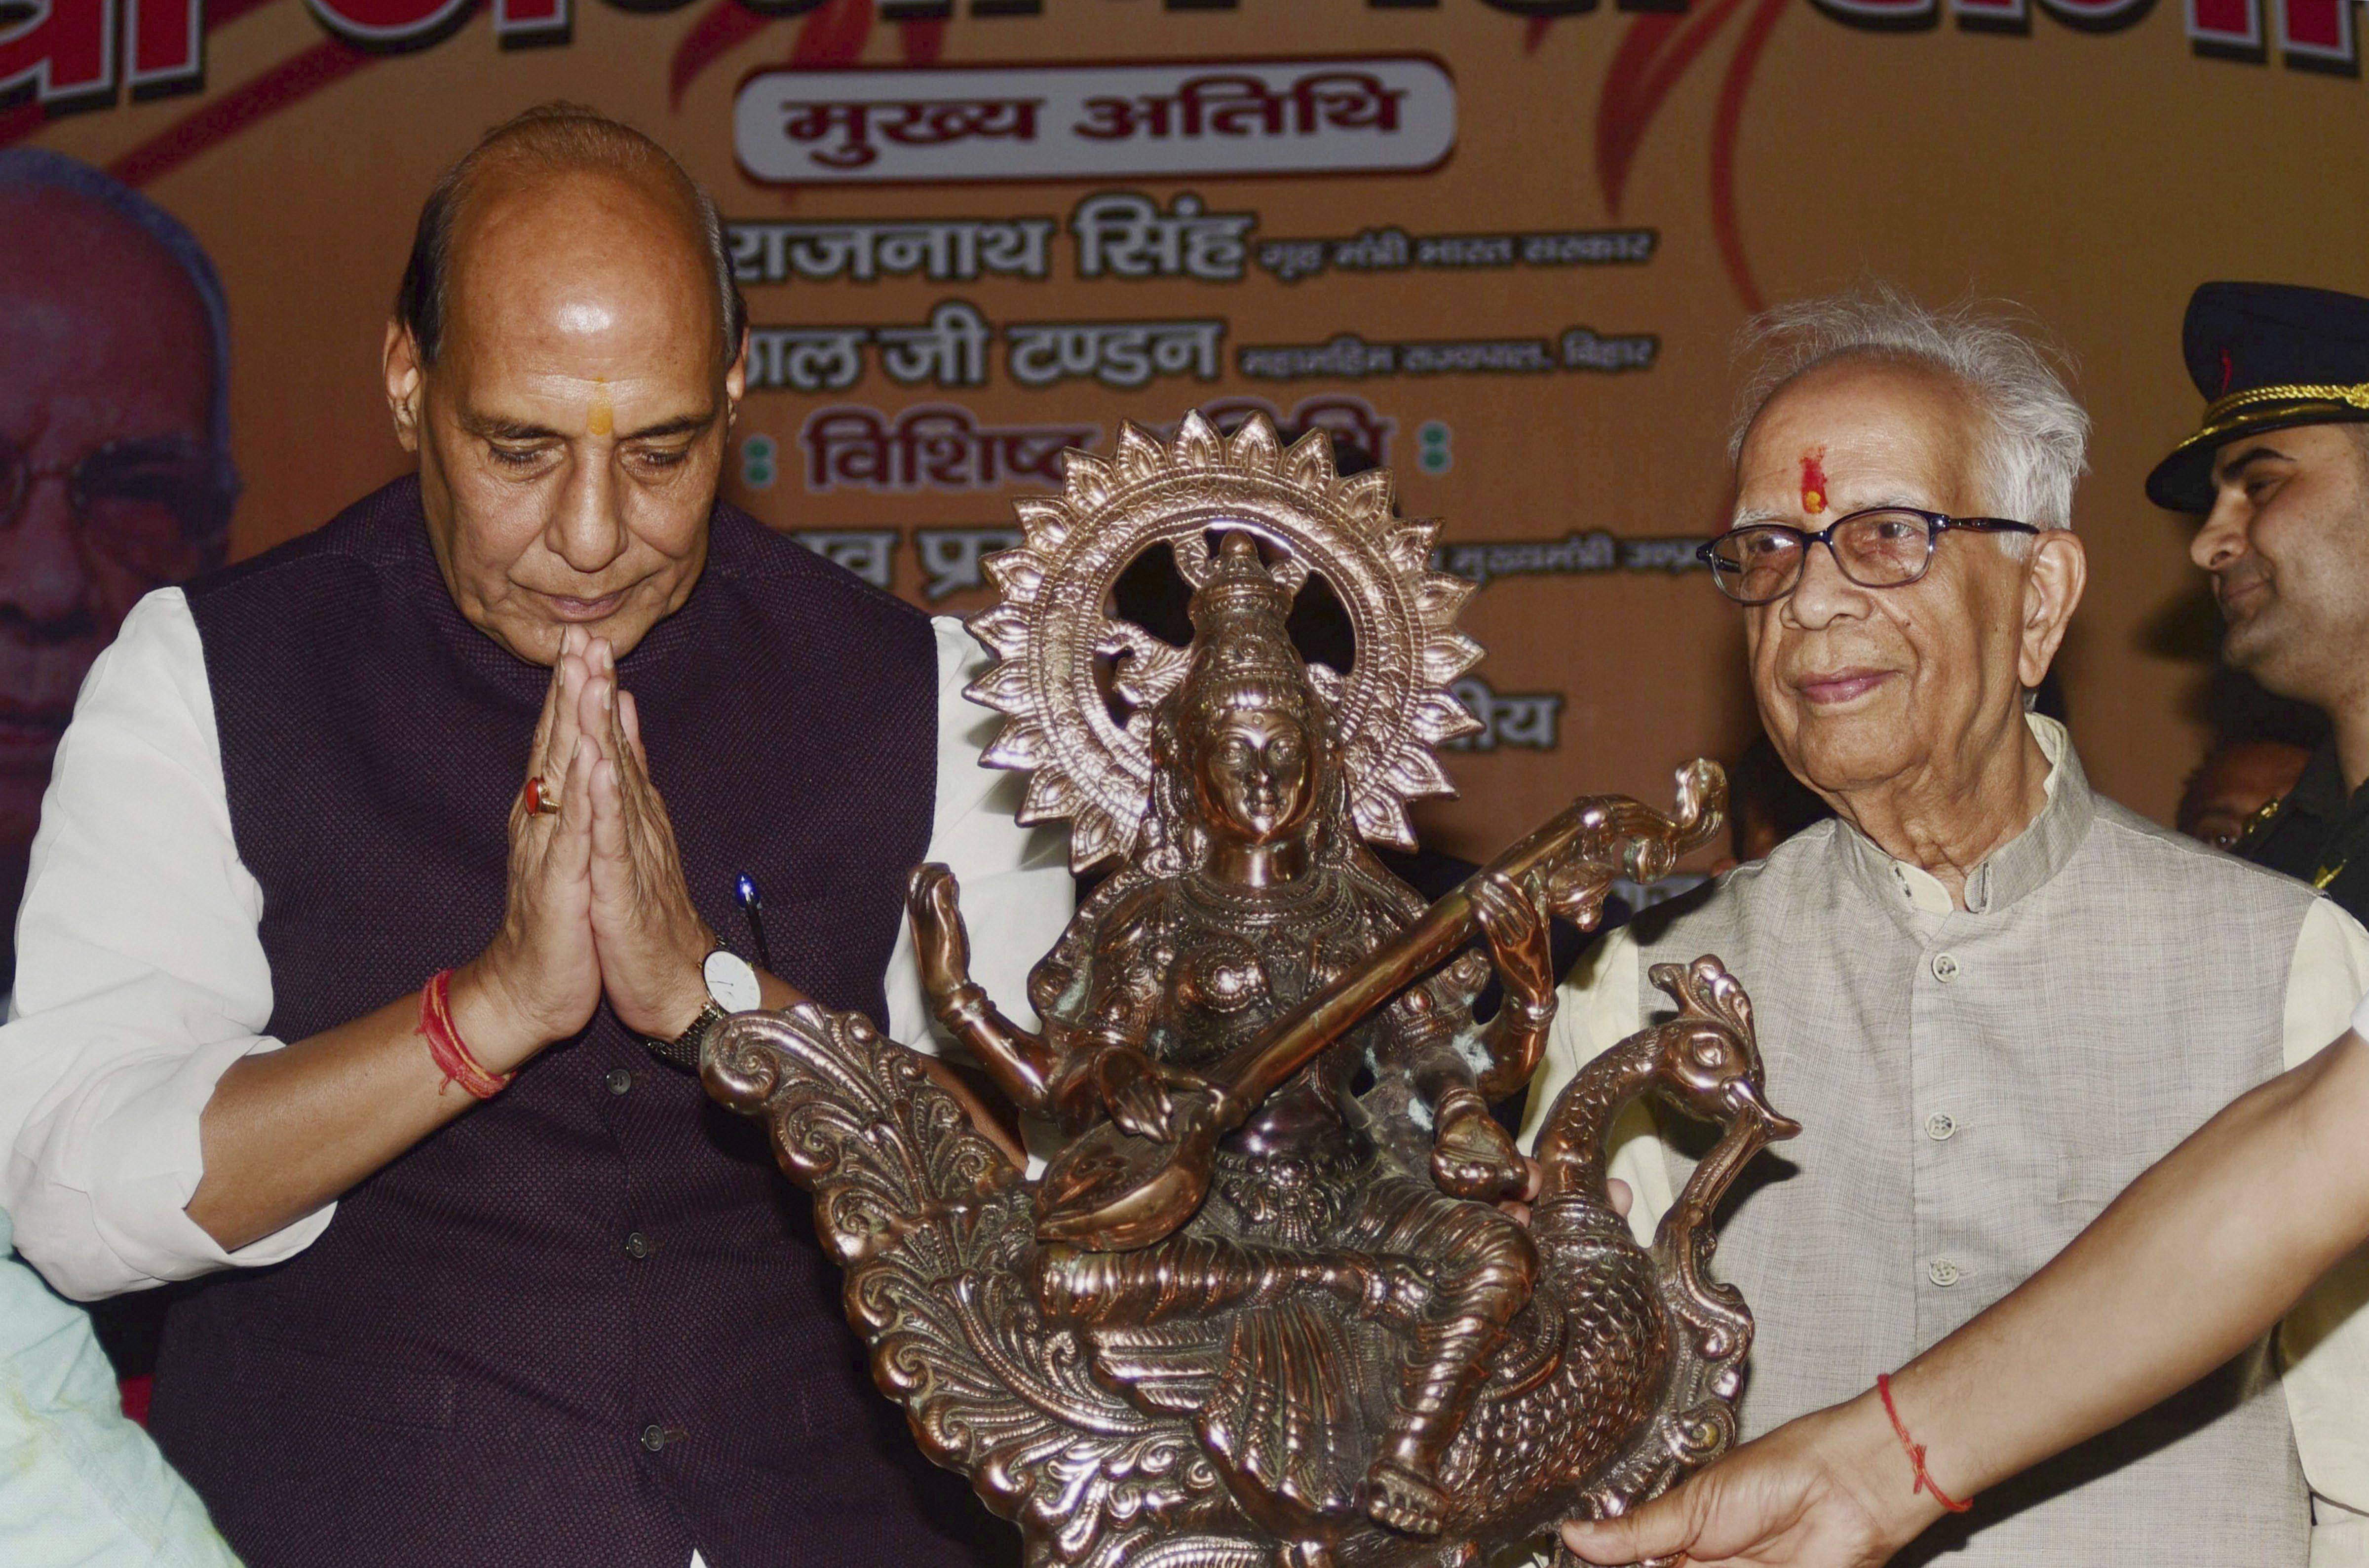 Union Home Minister Rajnath Singh greets West Bengal Governor Keshari Nath Tripathi during his birthday celebrations, in Allahabad - PTI